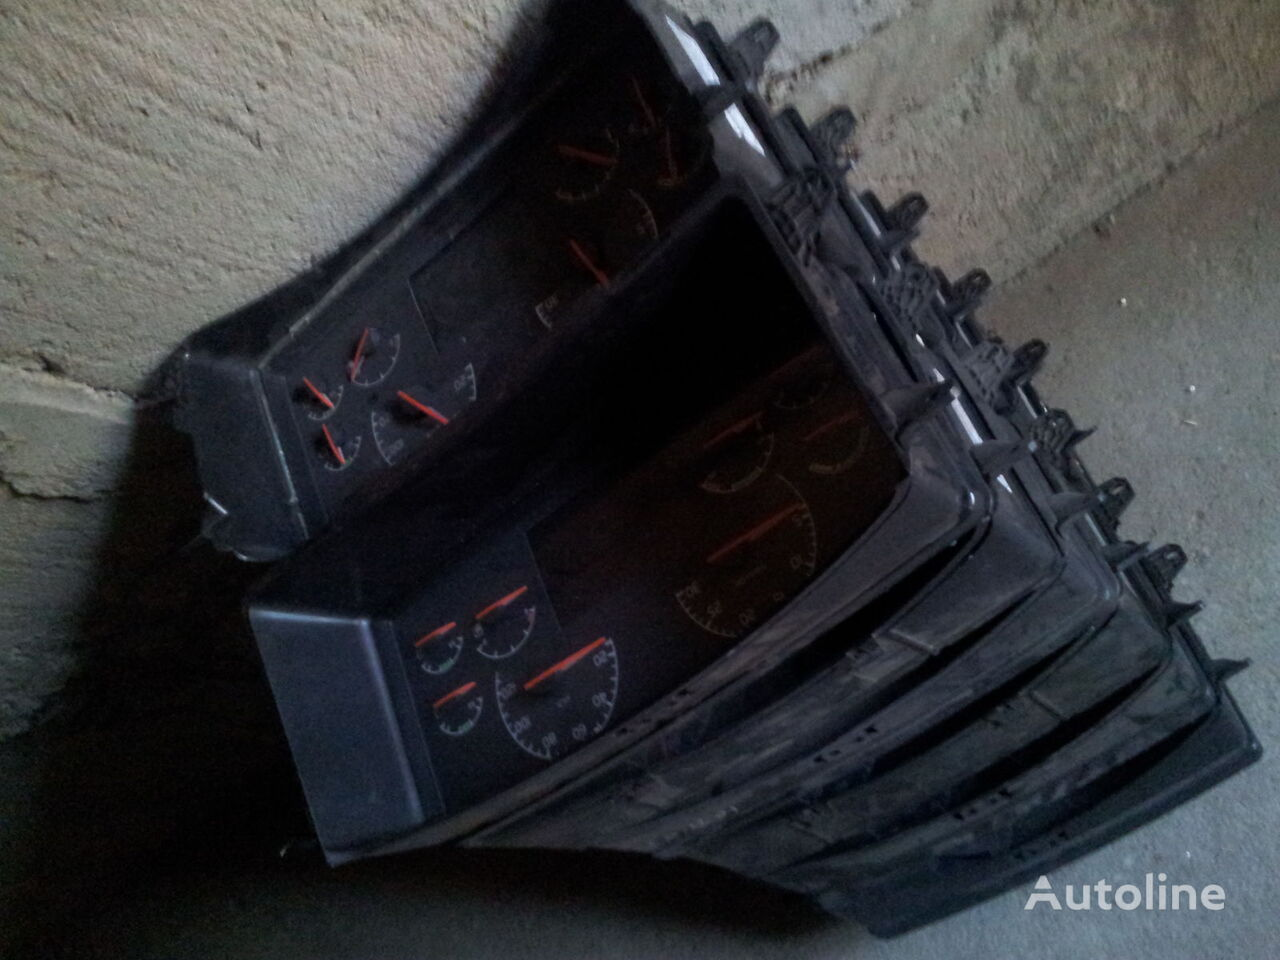 VOLVO FH12, FH13, combination kit 21842984 cluster, instrument cluster, 21542185, 21542194, 21542195, 21842984, 85135219, 85131298, 21842985, 85135219, 85131298, 21842994, 85135219, 85131298 painel de instrumentos para VOLVO FH13 camião tractor